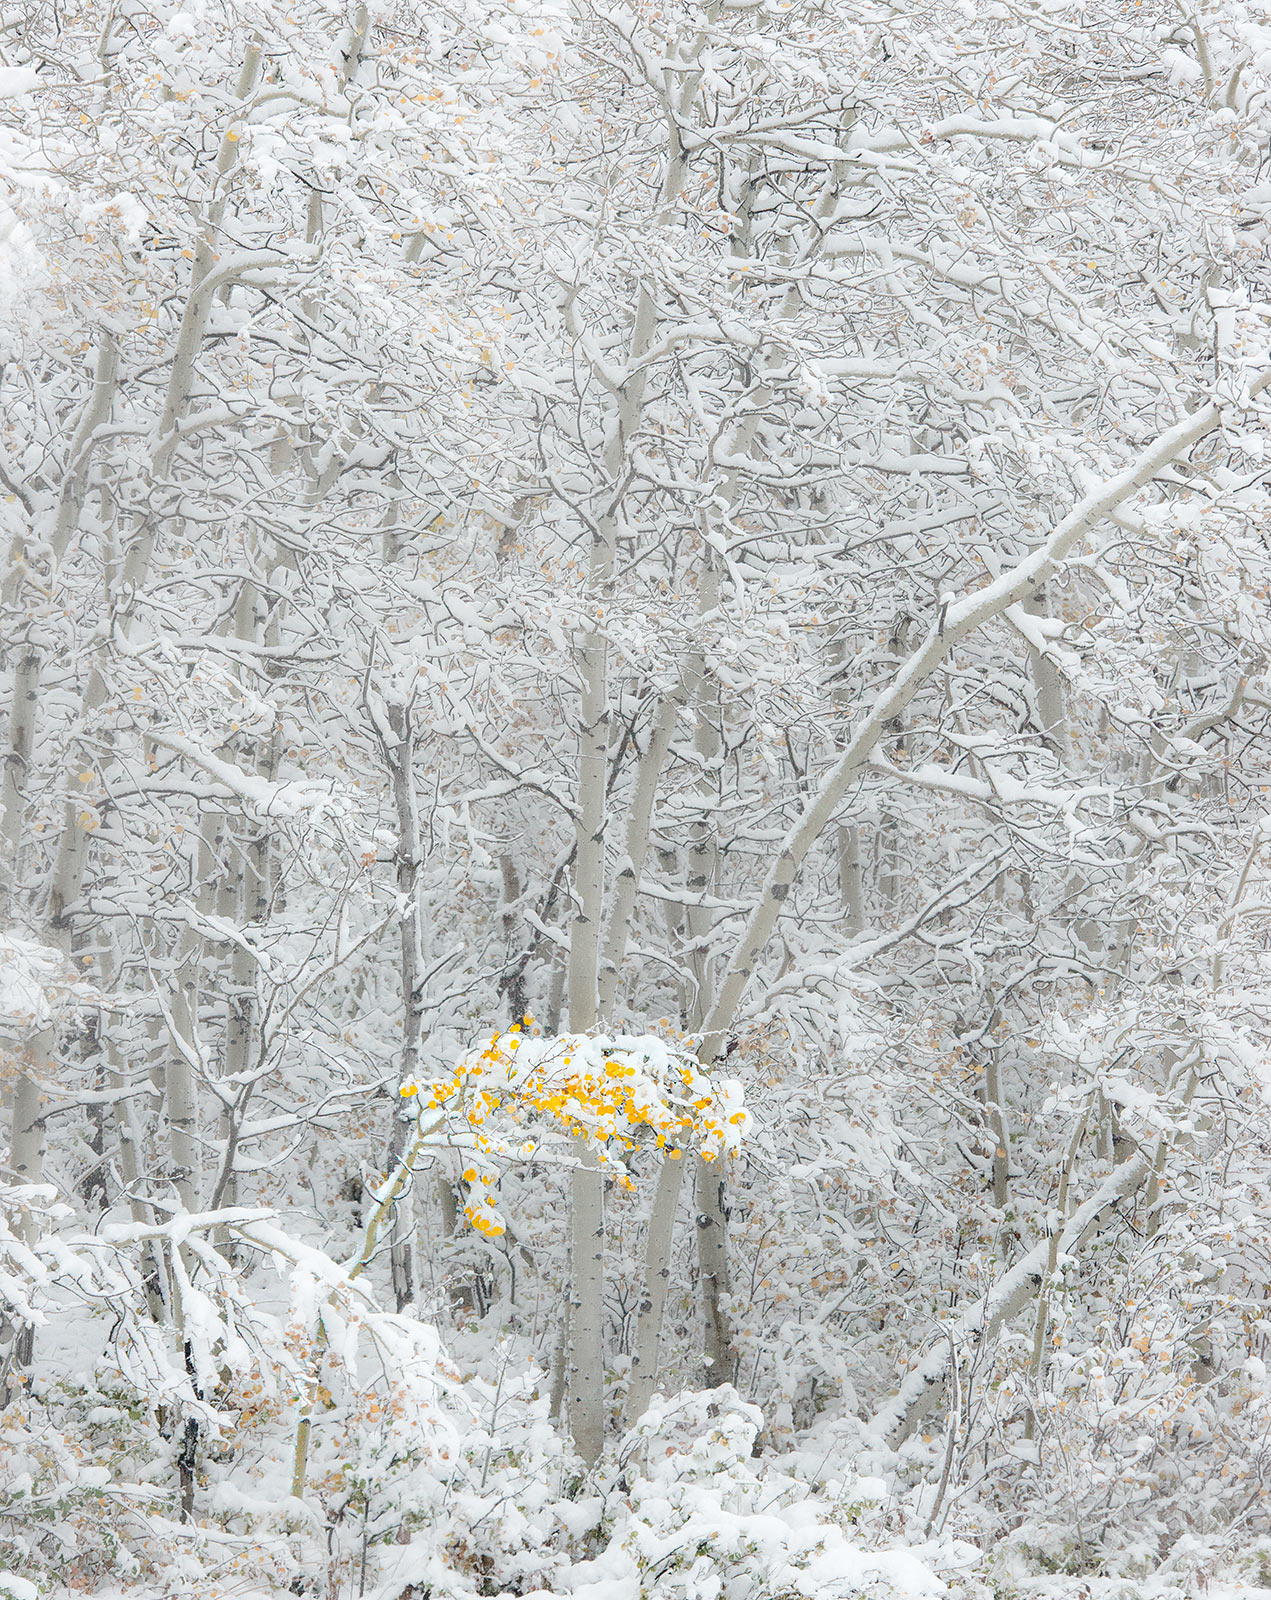 Fall, snowfall, gold, glacier, montana, Lone, Tree, Color, Snow, photo